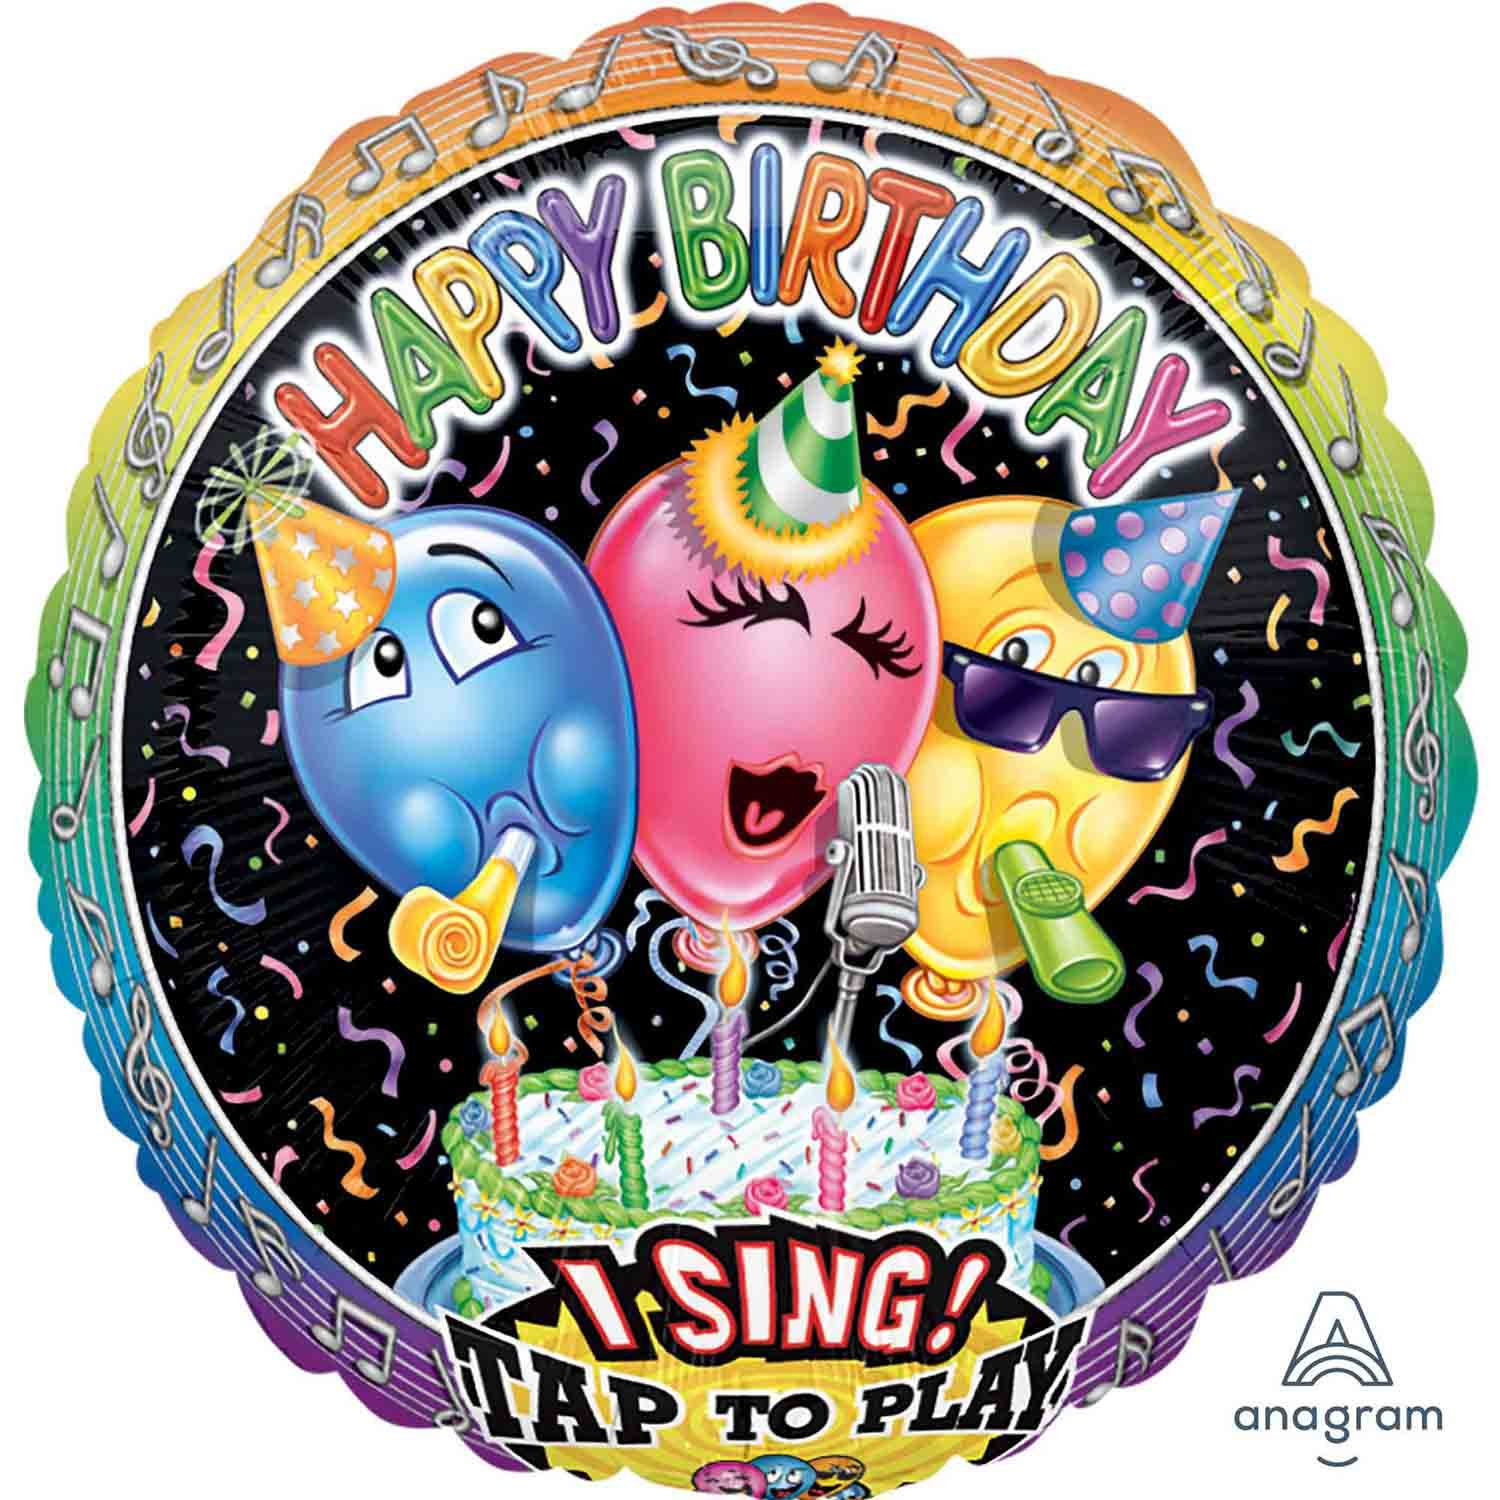 Sing-A-Tune XL Singing Balloon Birthday P60